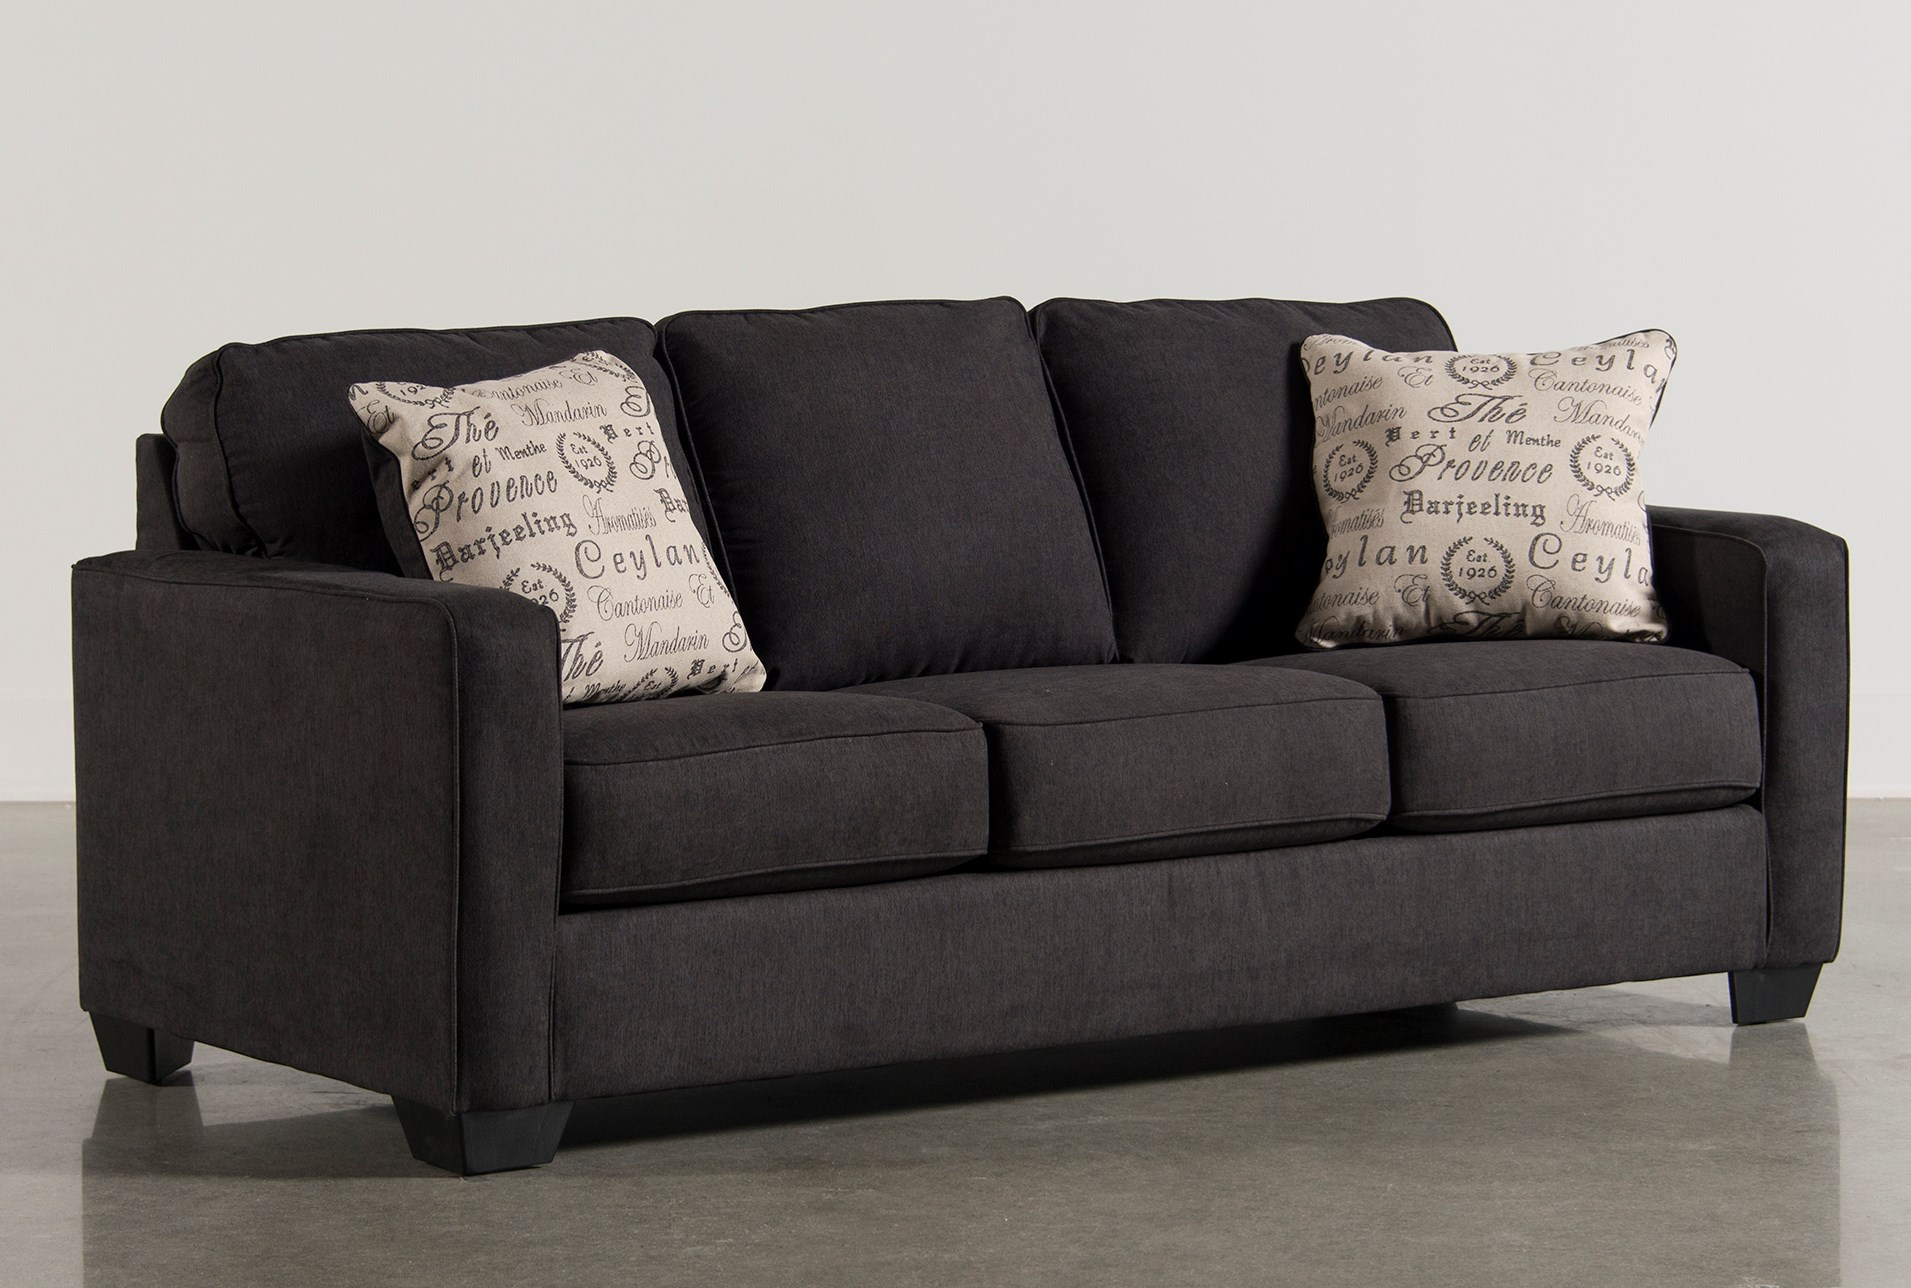 Best Sleeper Sofas Consumer Reports